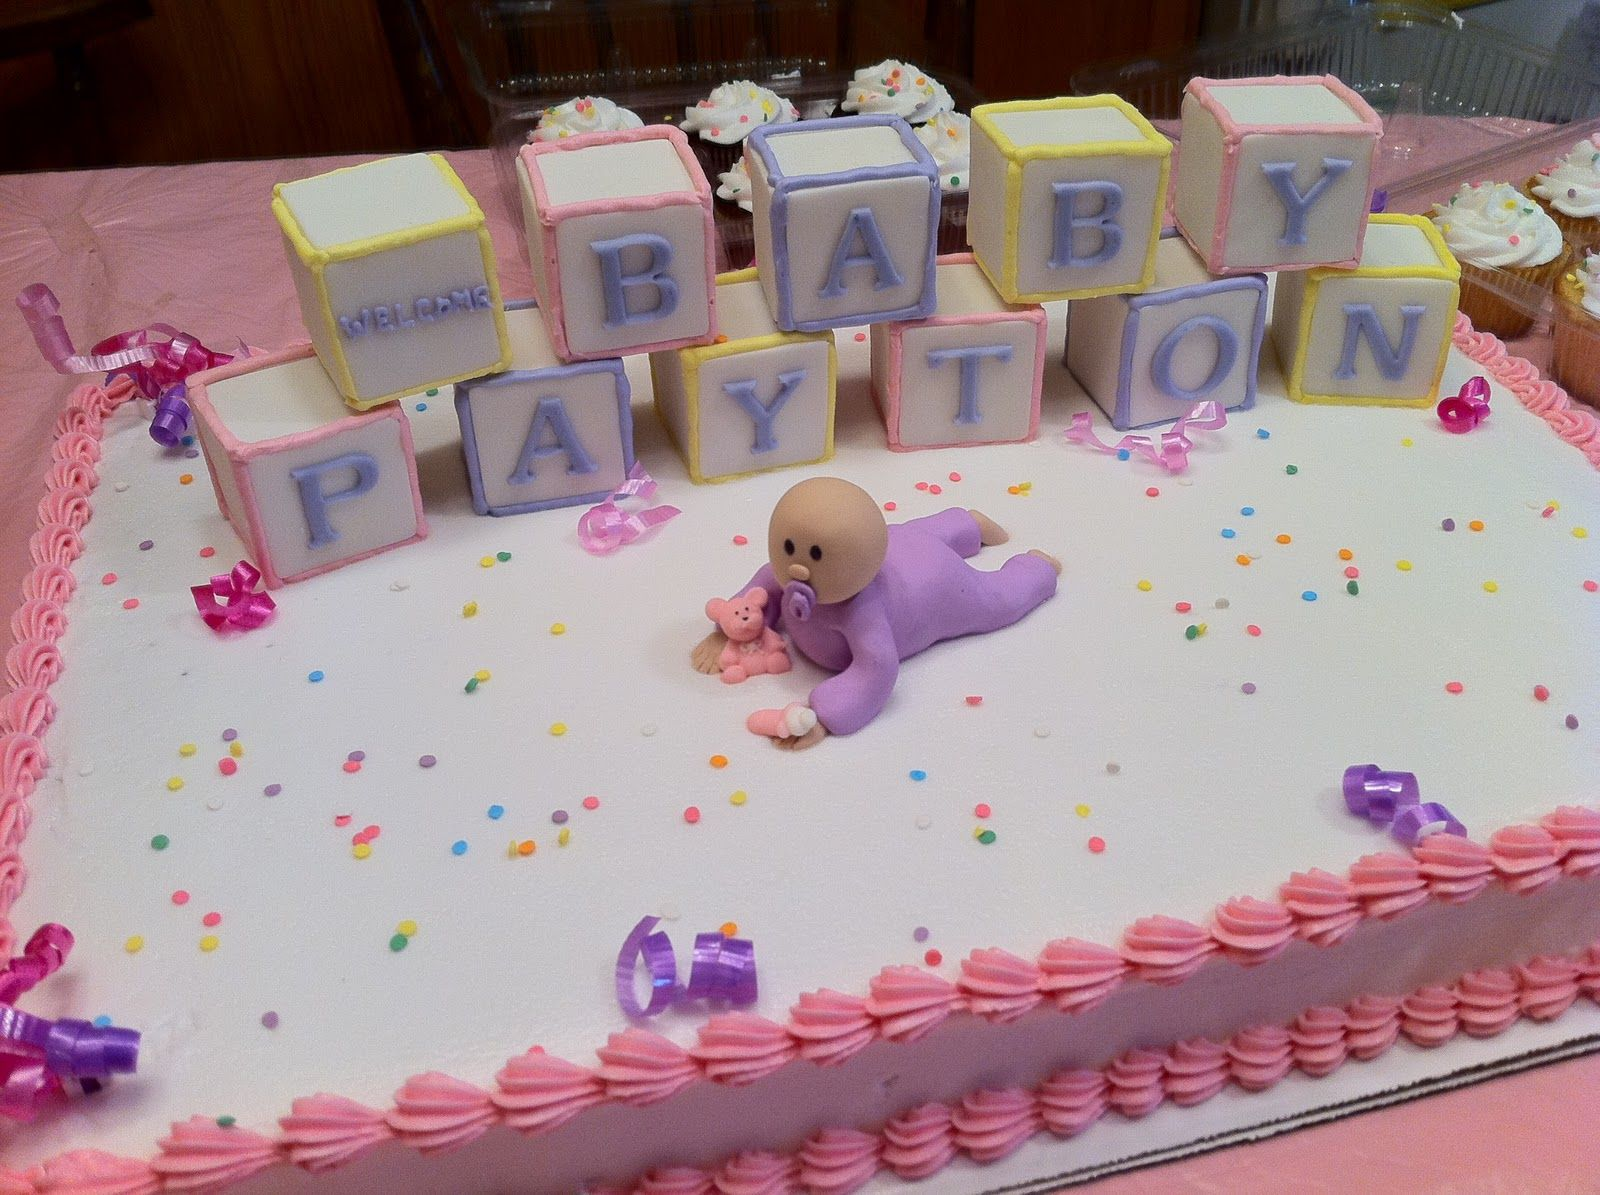 Simple homemade baby shower cakes for girls recipes this cake was for my cousins baby shower - Easy baby shower cakes for girls ...